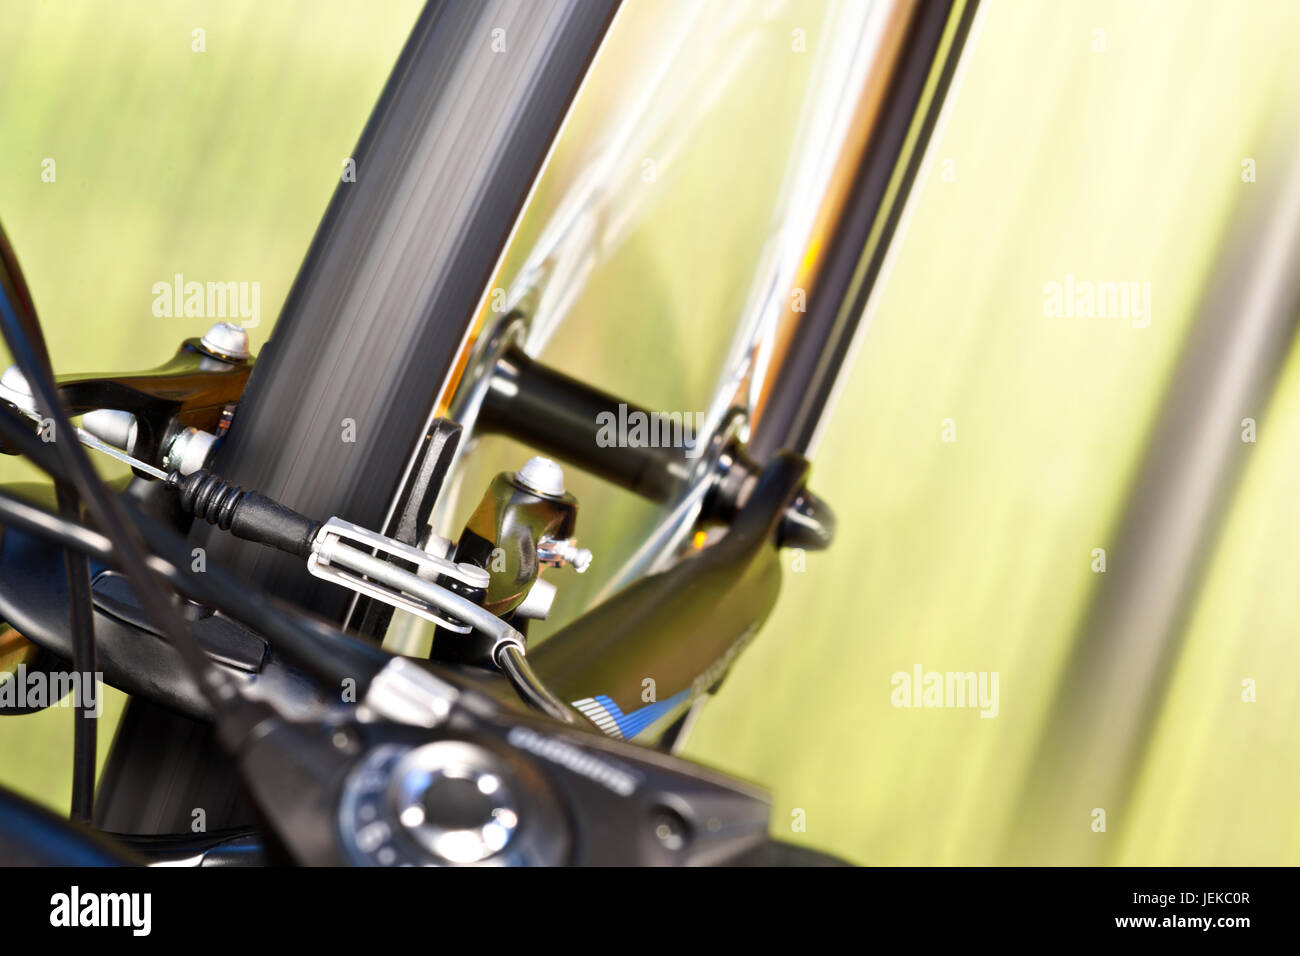 Detail Of Caliper Brakes And Suspension Fork - Stock Image